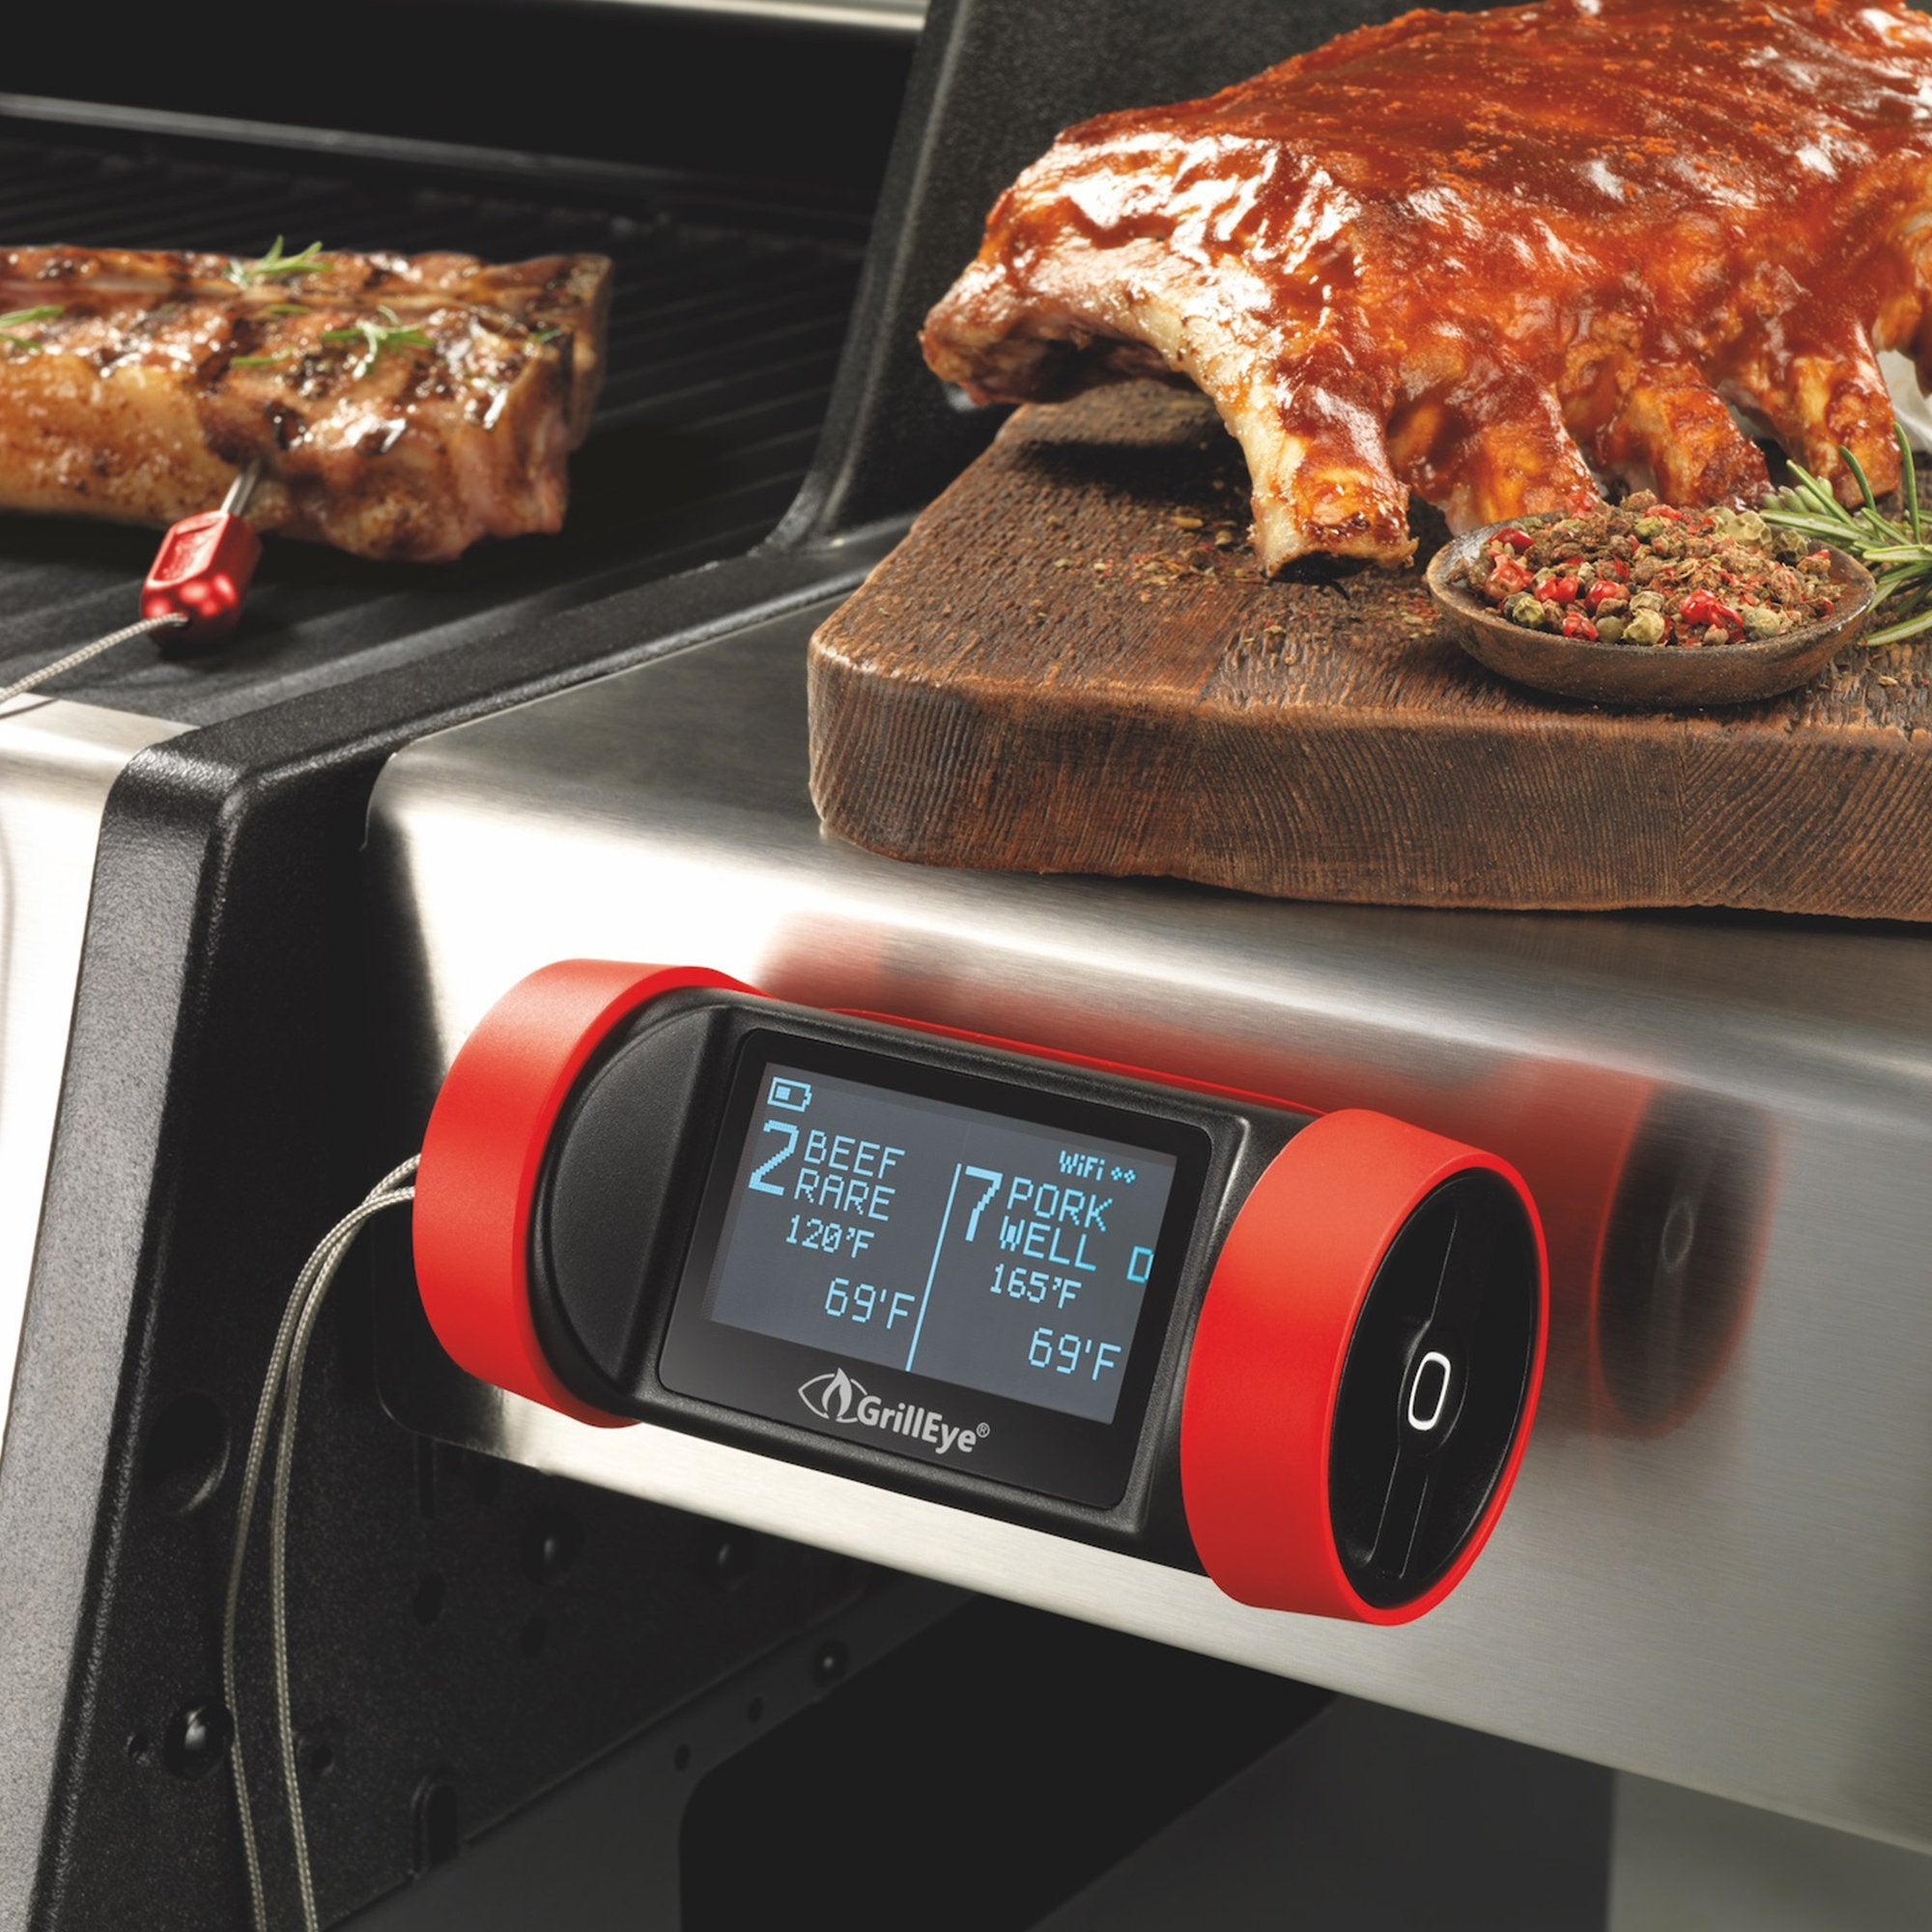 Bluemar Promotions GrillEye Professional Grilling & Smoking Thermometer w/ Hybrid-Wireless & A.D.S. Technology in Black/red